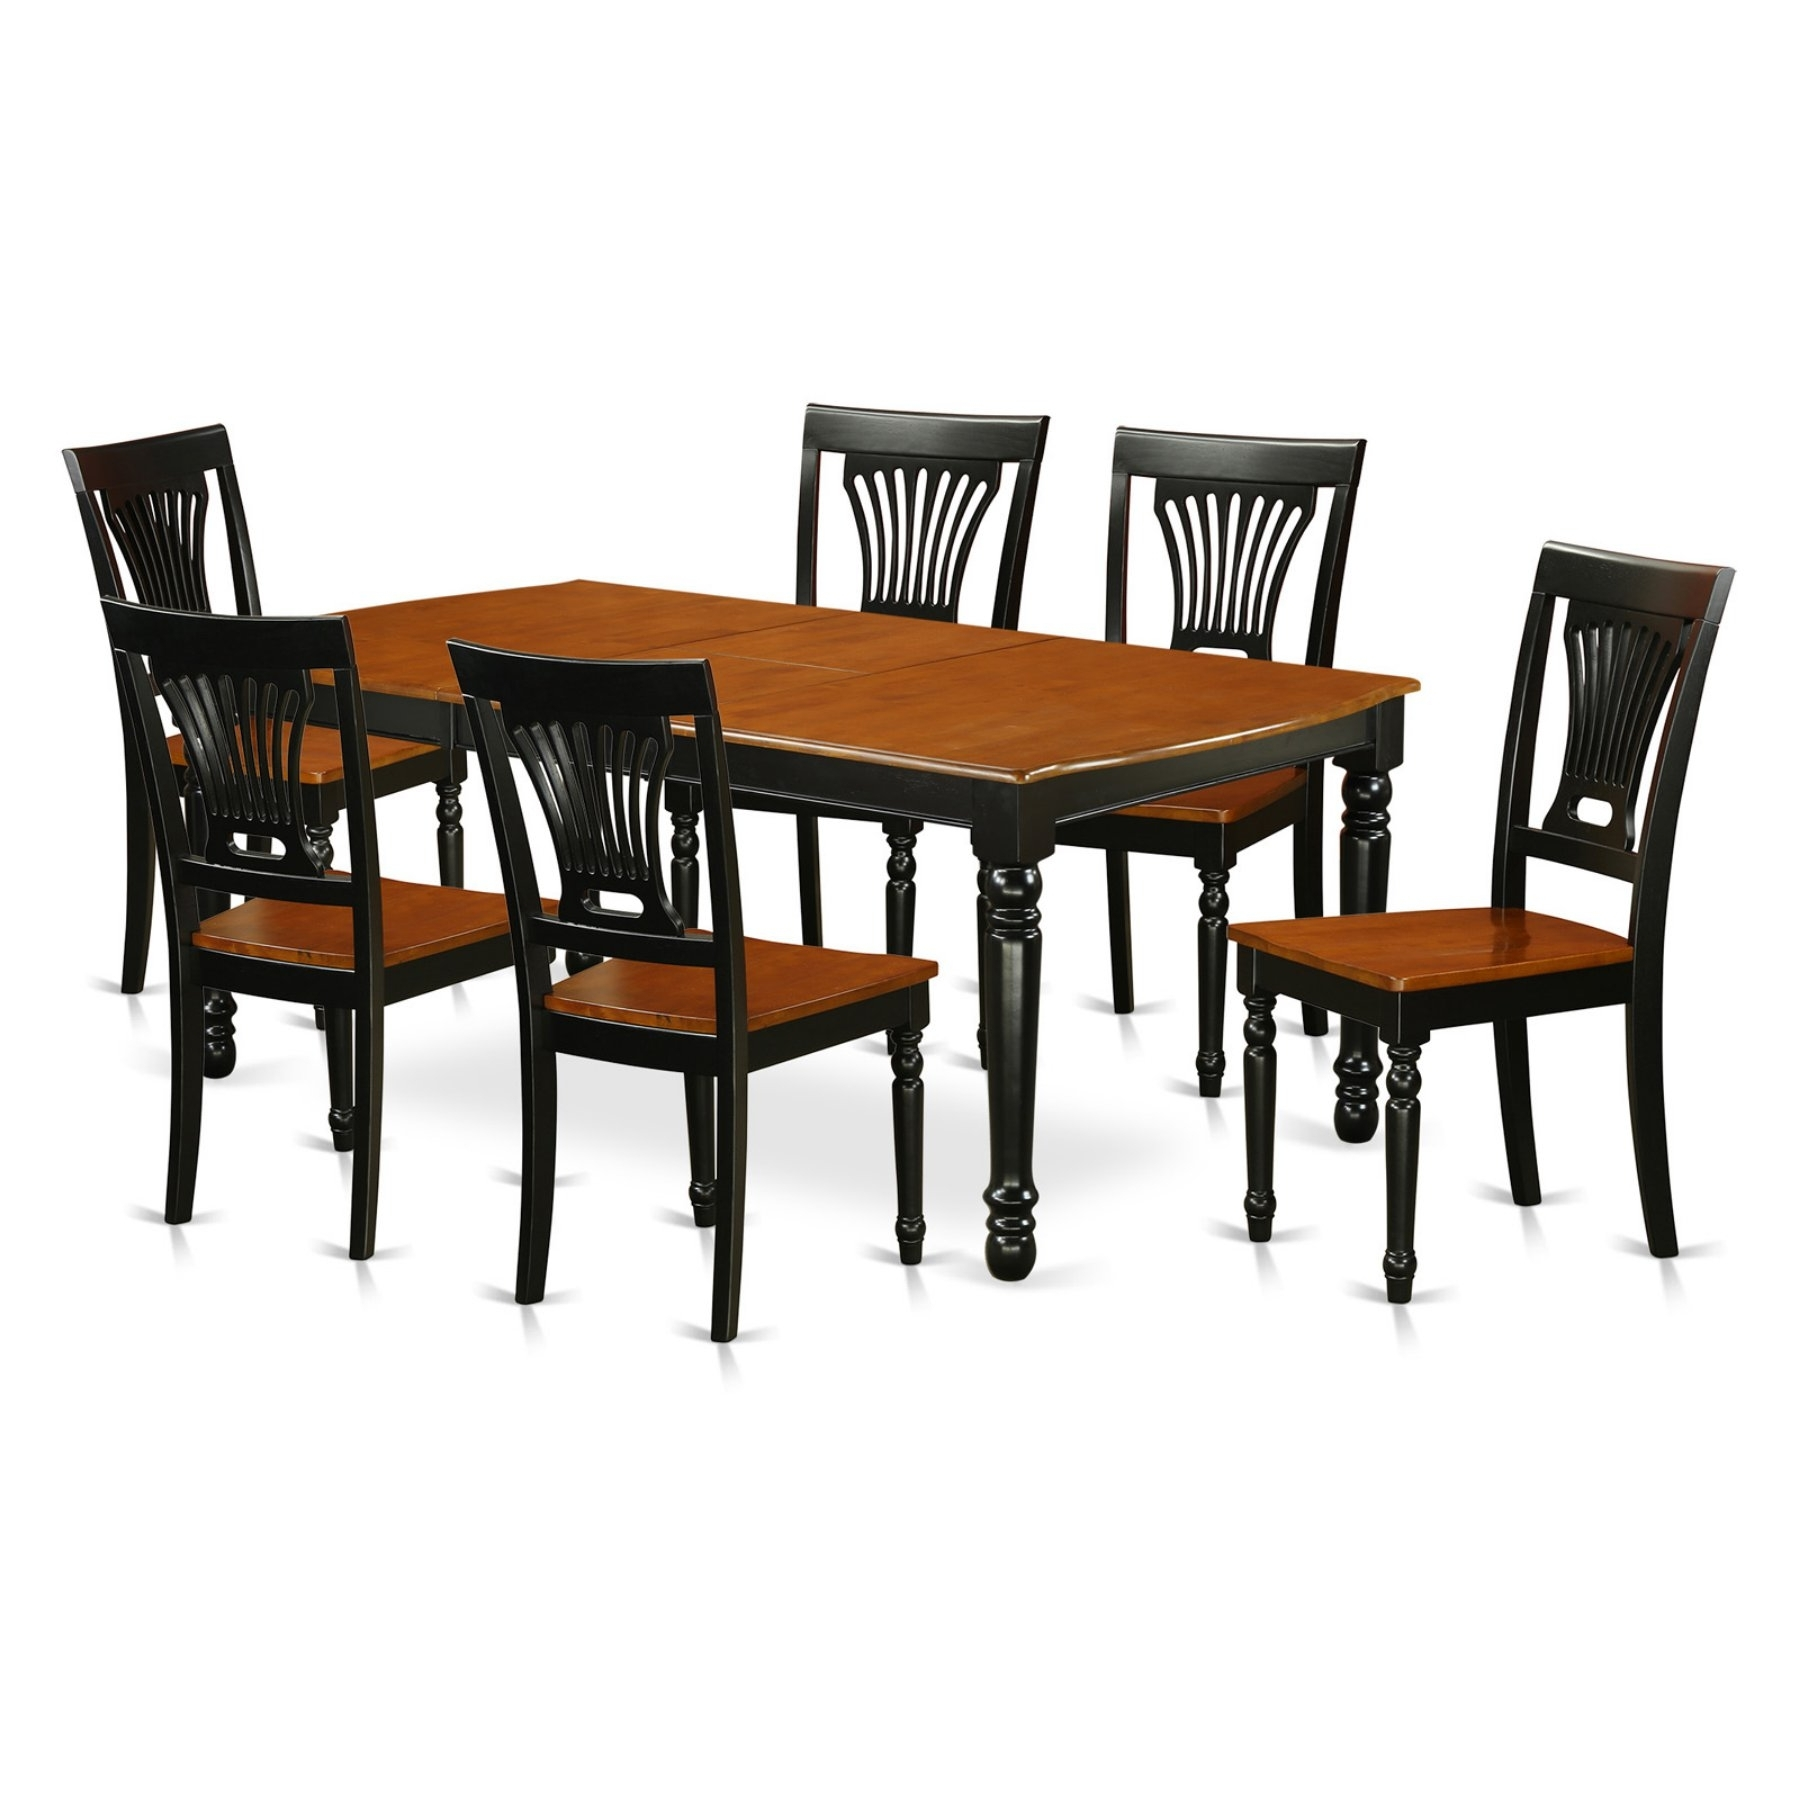 East West Furniture Dover Dopl7 Seven Piece Extension Dining Table In Most Current Parquet 6 Piece Dining Sets (View 7 of 25)